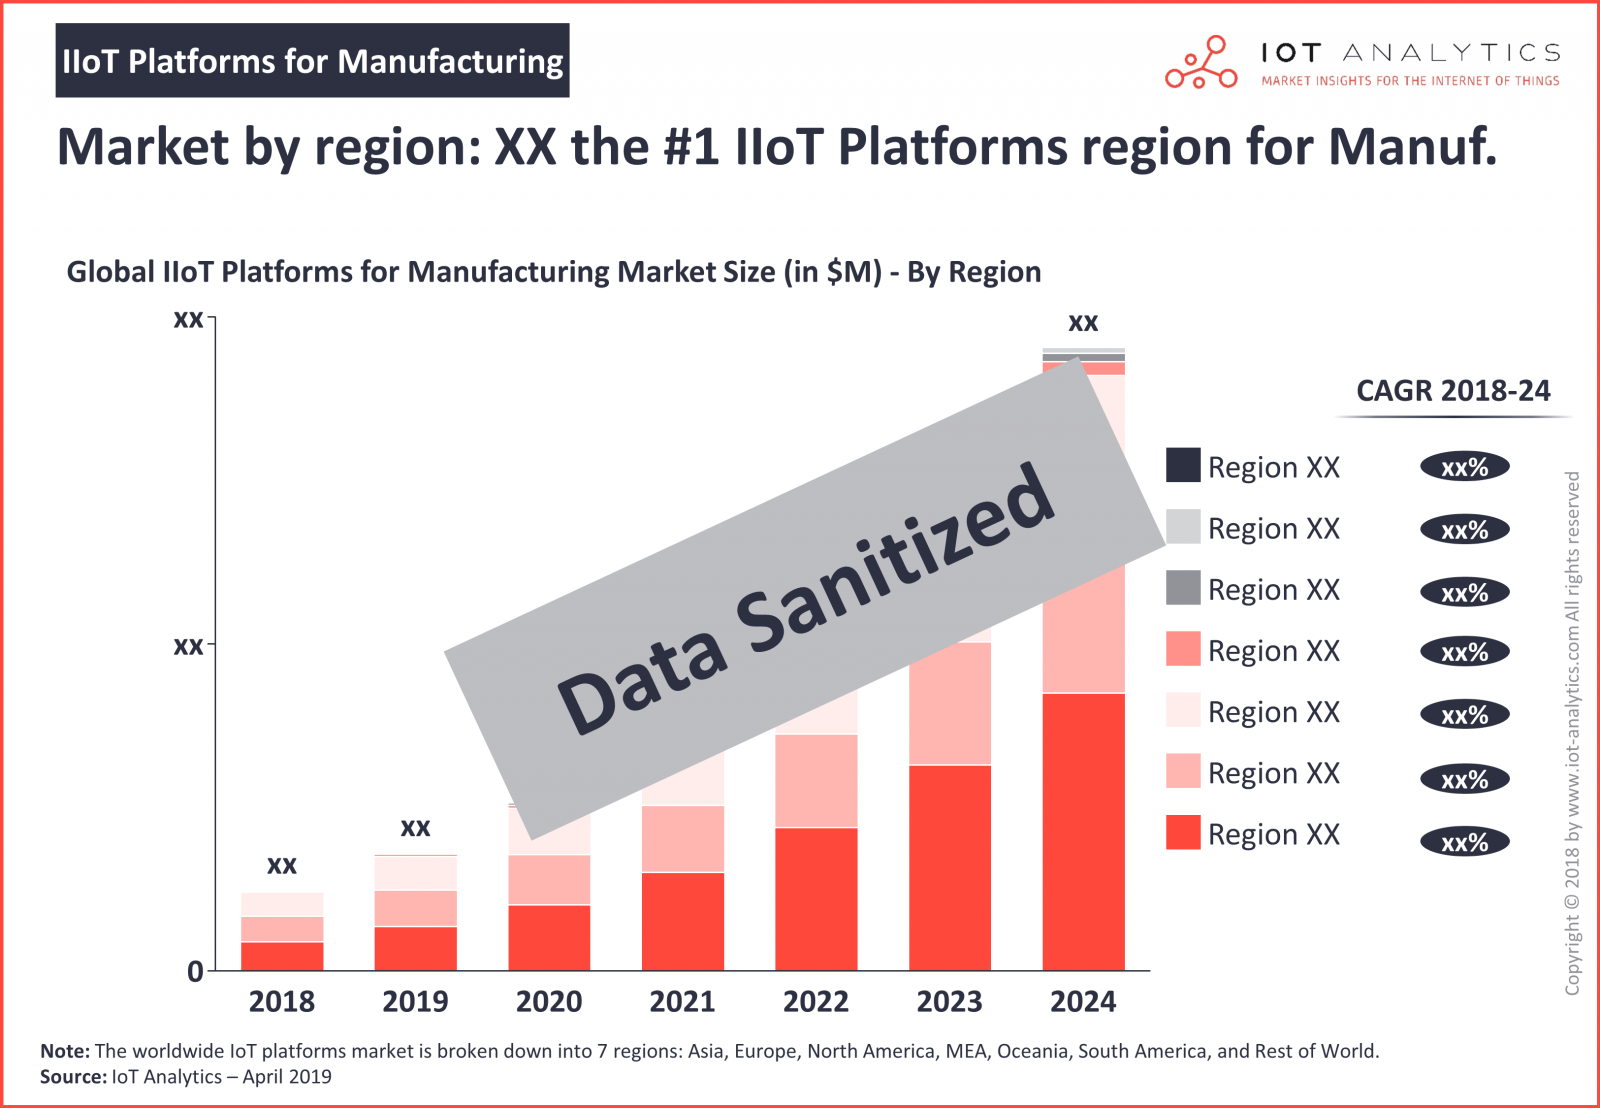 Market by region - IIoT Platforms for Manufacturing 2019-2024 (IoT Analytics GmbH)